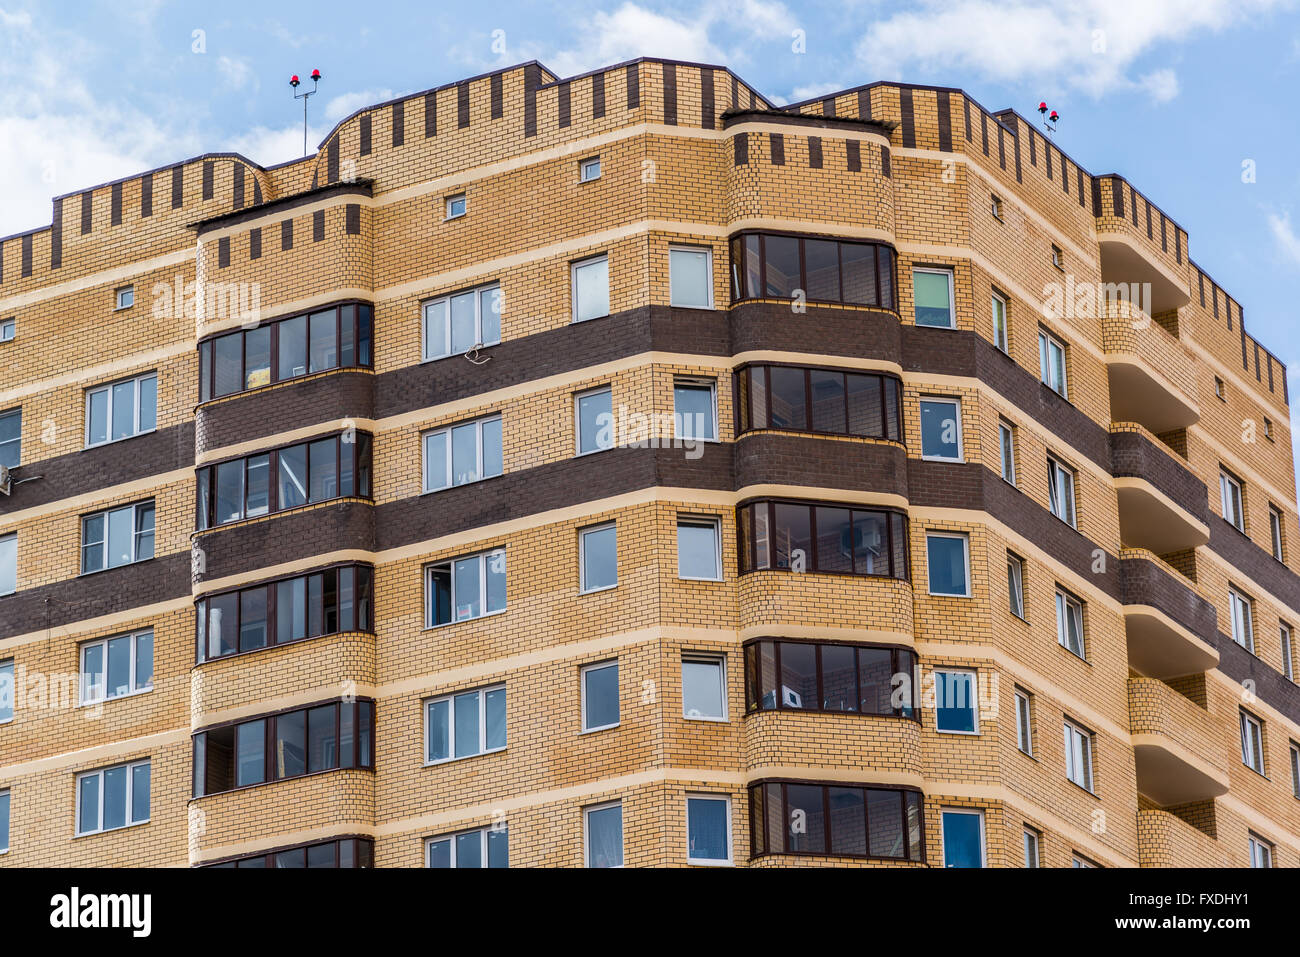 modern high rise apartment building made of brick stock photo royalty free image 102332357 alamy. Black Bedroom Furniture Sets. Home Design Ideas